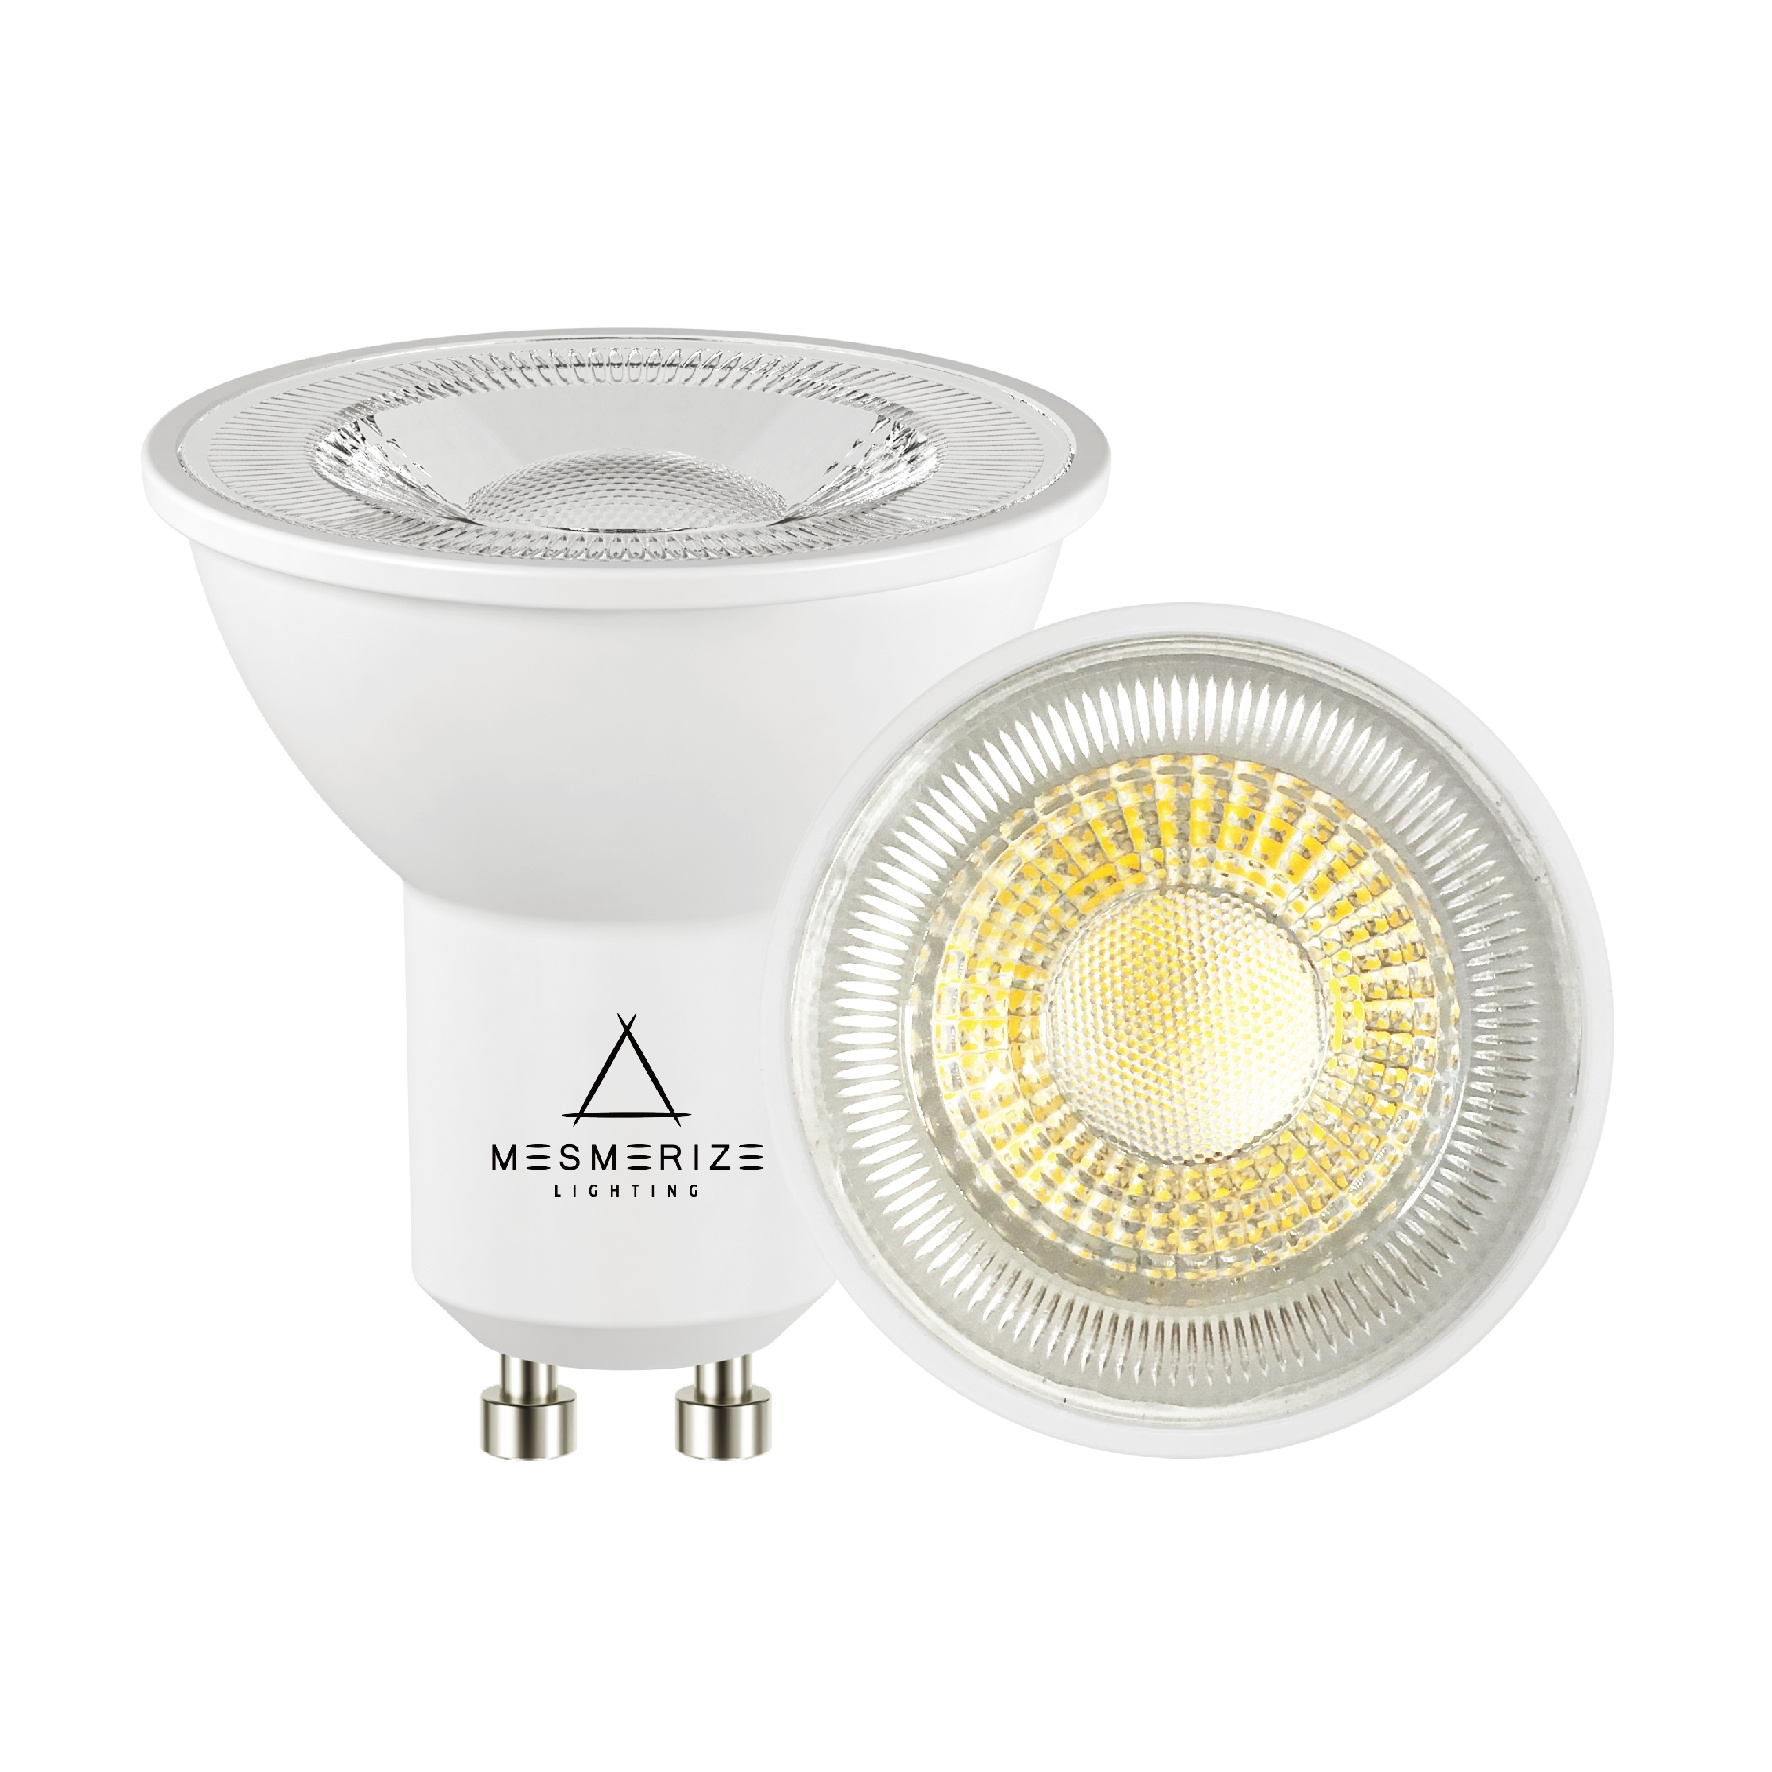 MESMERIZE DOWNLIGHT GU10 LED COMET 7.5W 6500K DAYLIGHT DIMMABLE 700LM